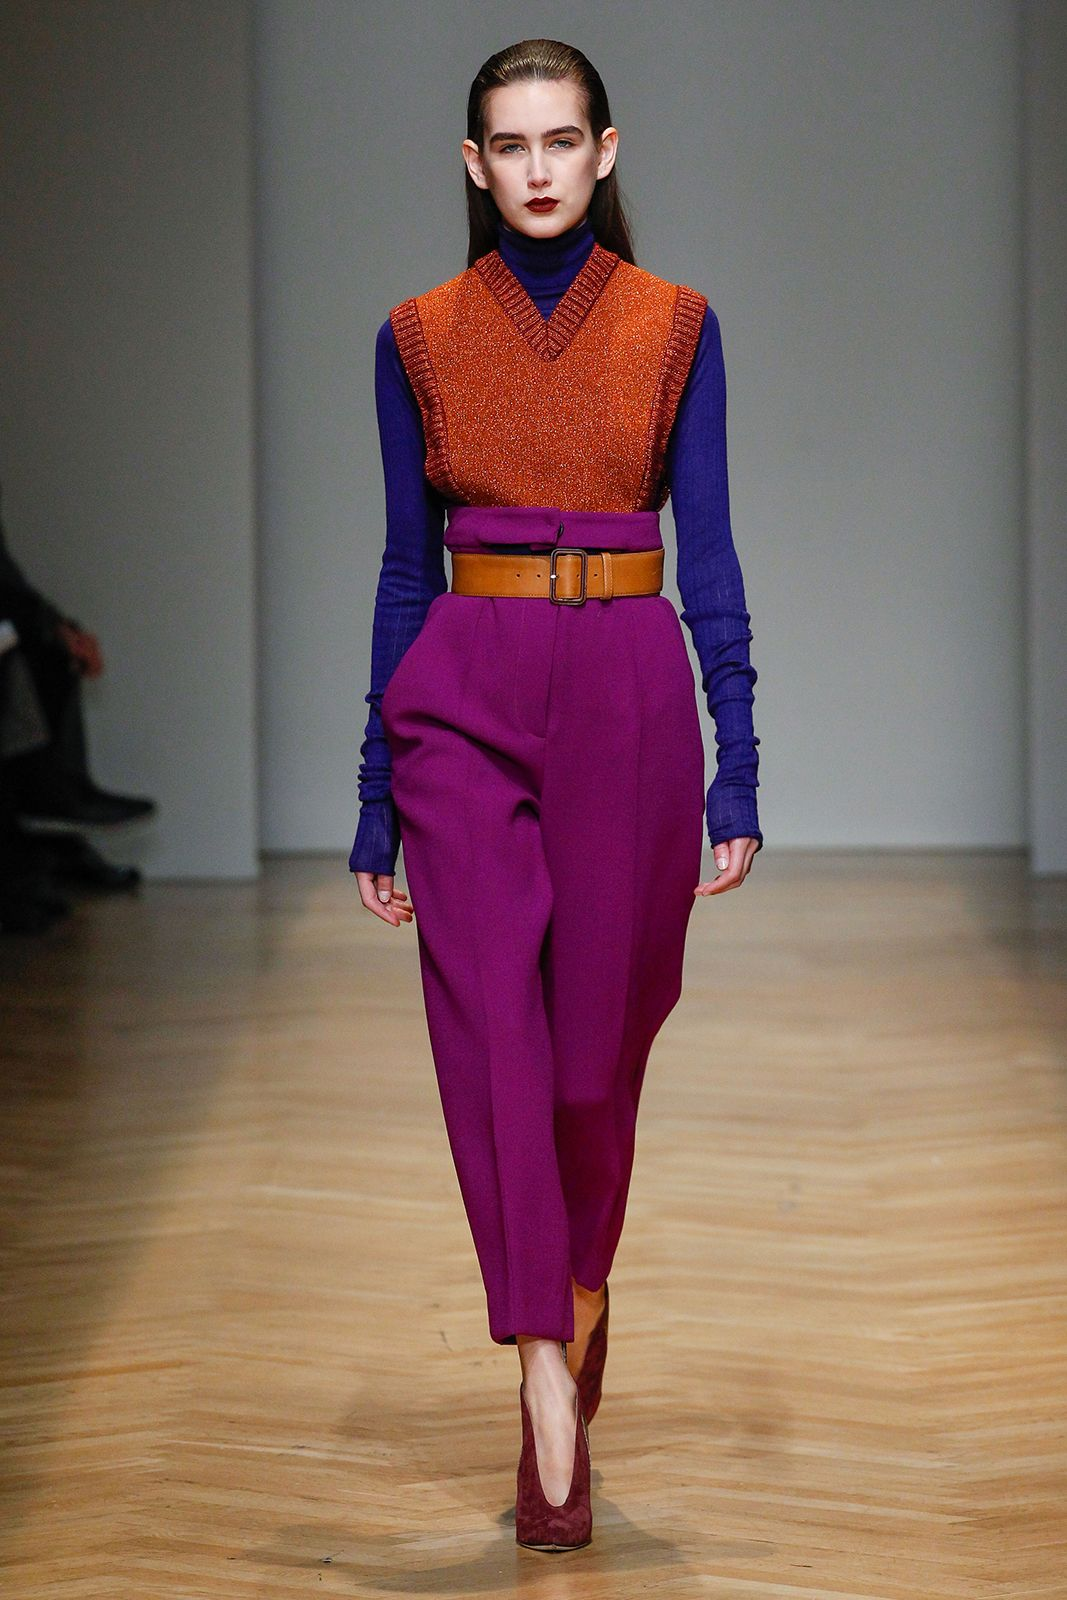 Watch - How to colour wear blocking trend video